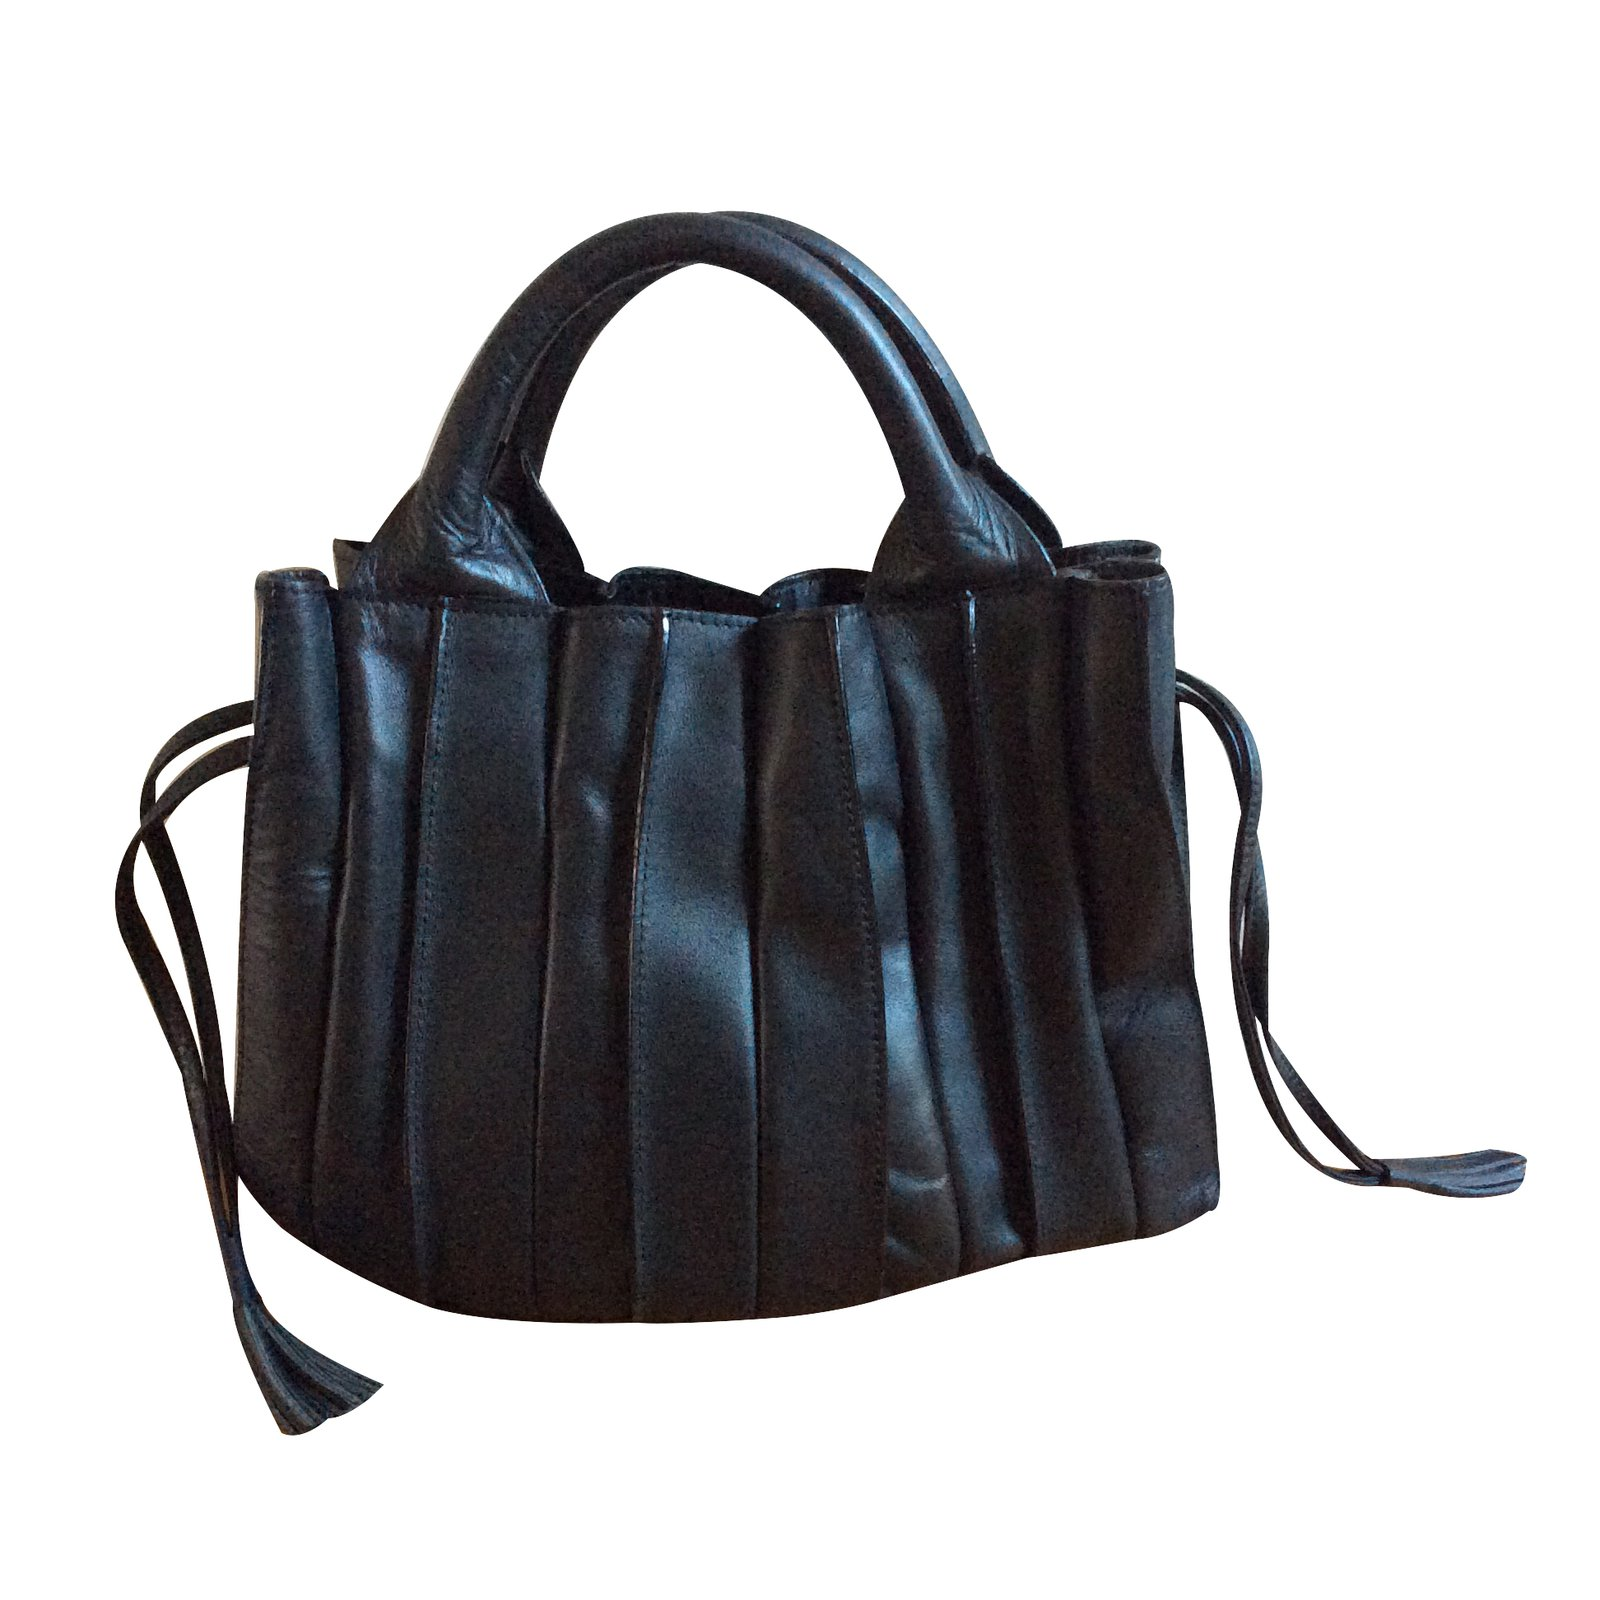 Autre Marque Lupo Handbag Handbags Leather Black Ref 29358